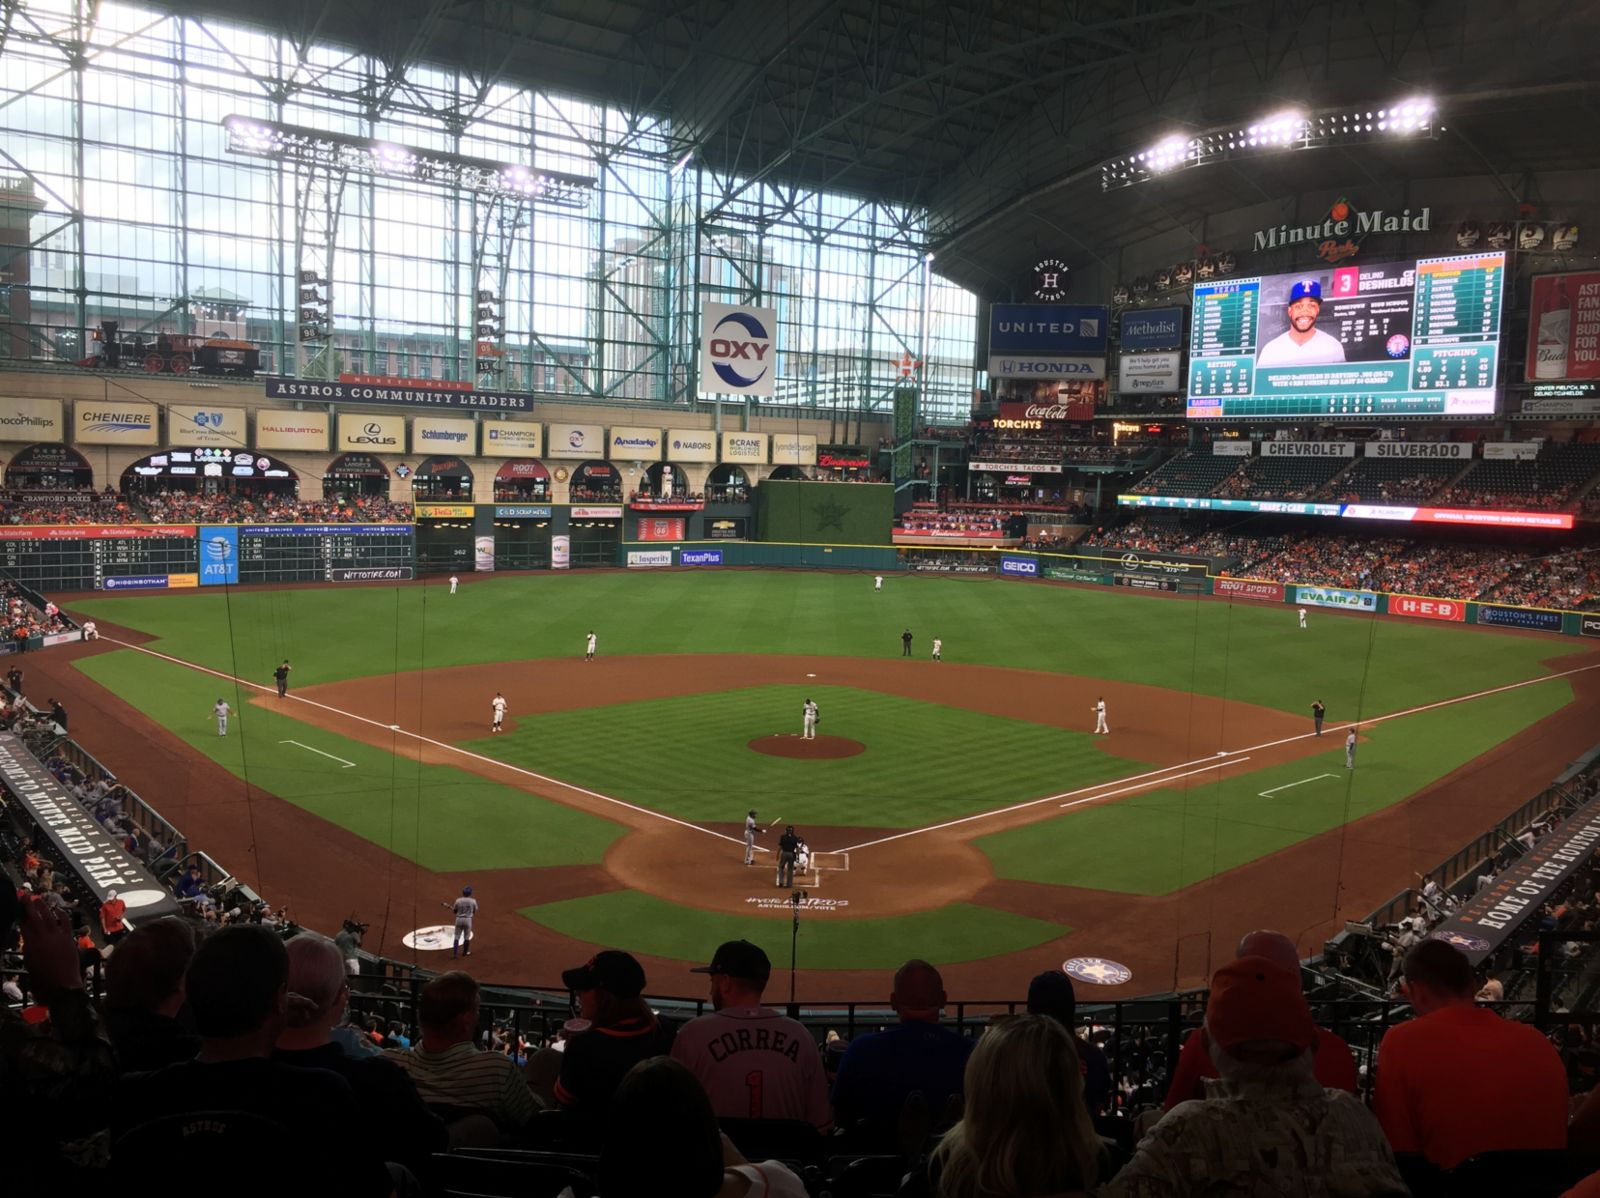 Minute Maid Park Standing Room Only